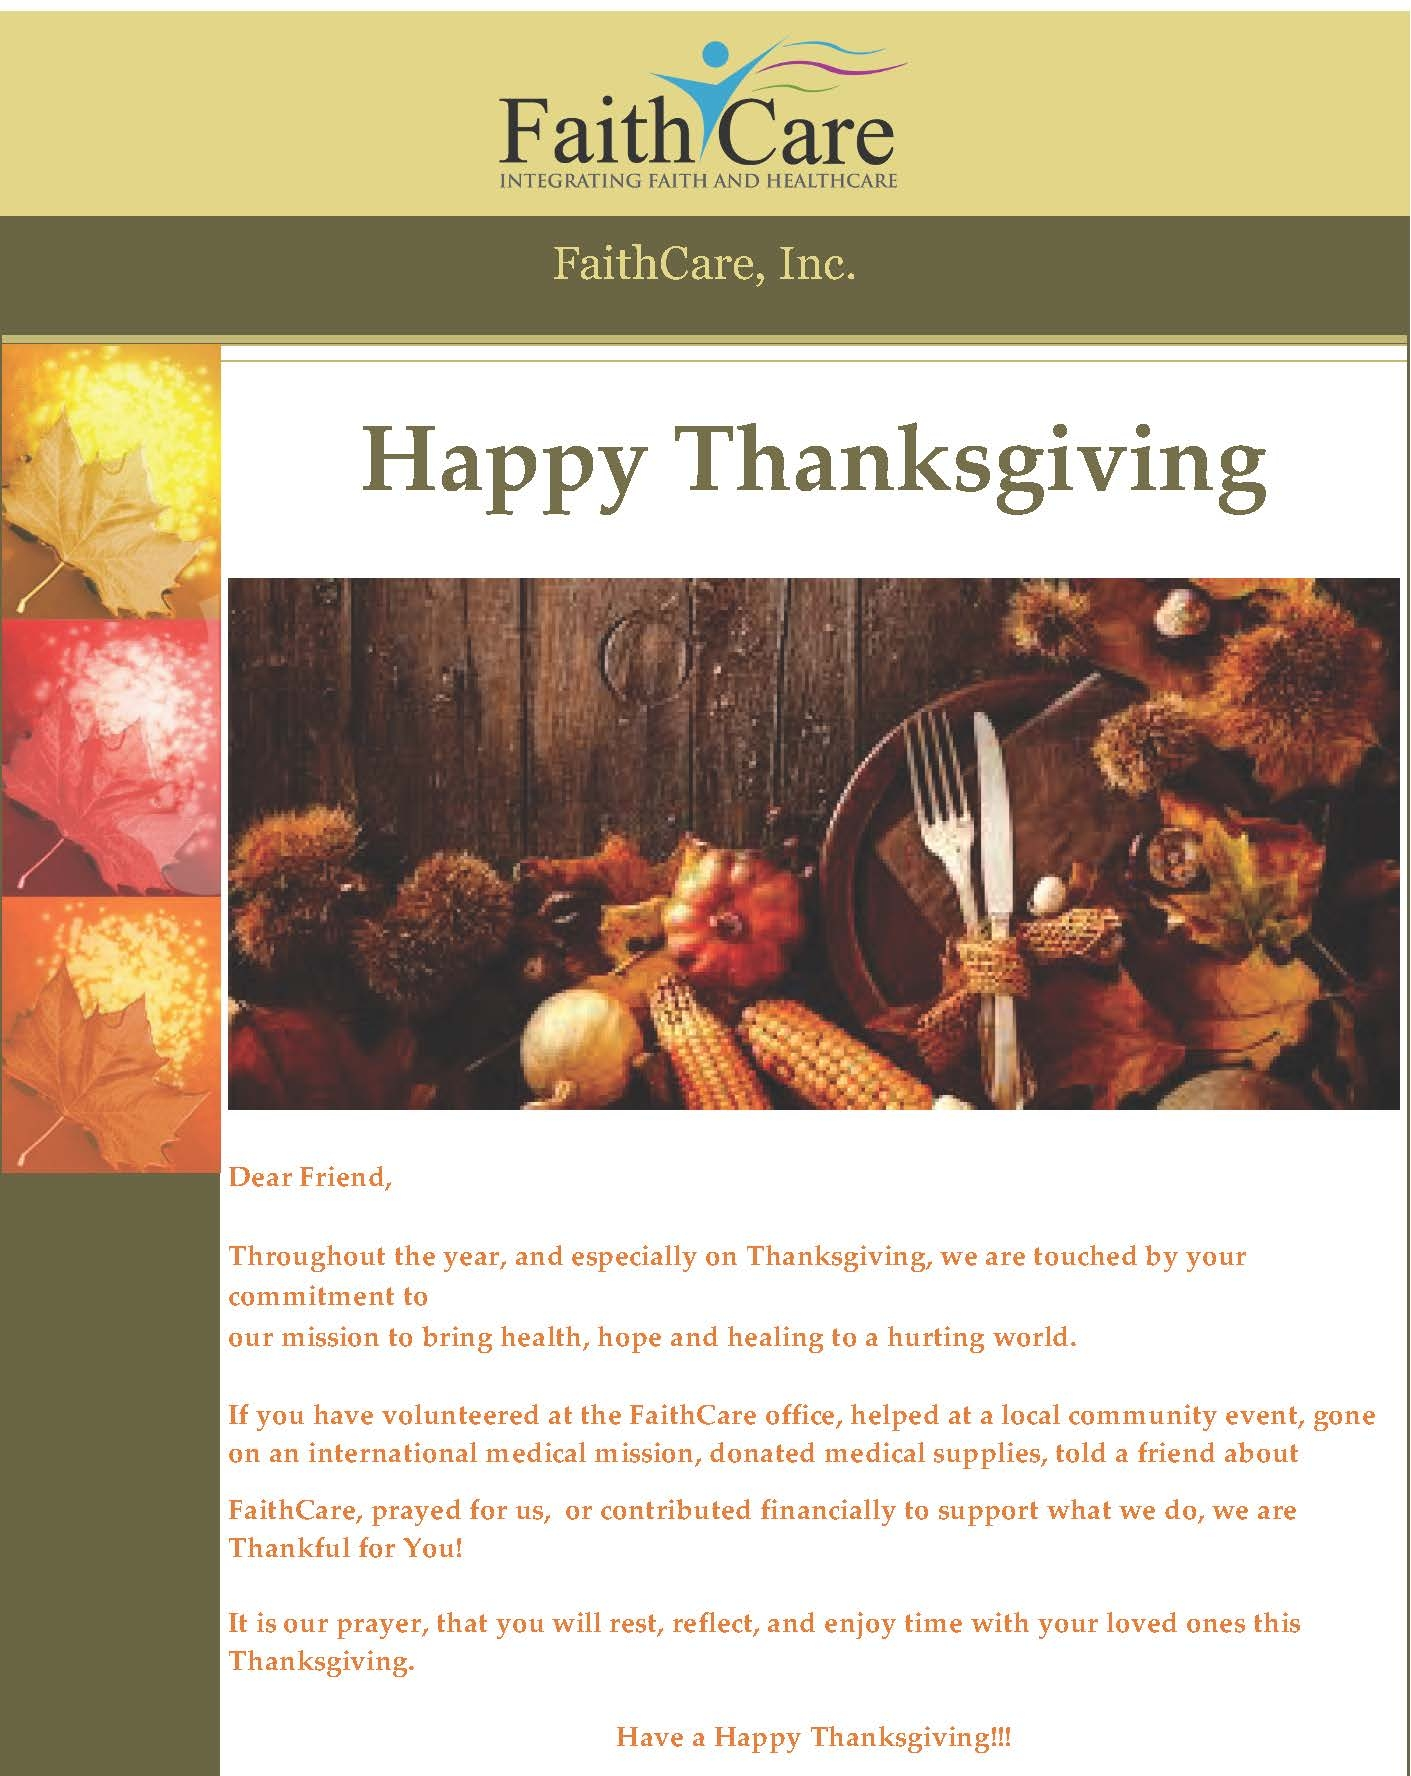 Happy Thanksgiving 2018 Final_Page_1.jpg